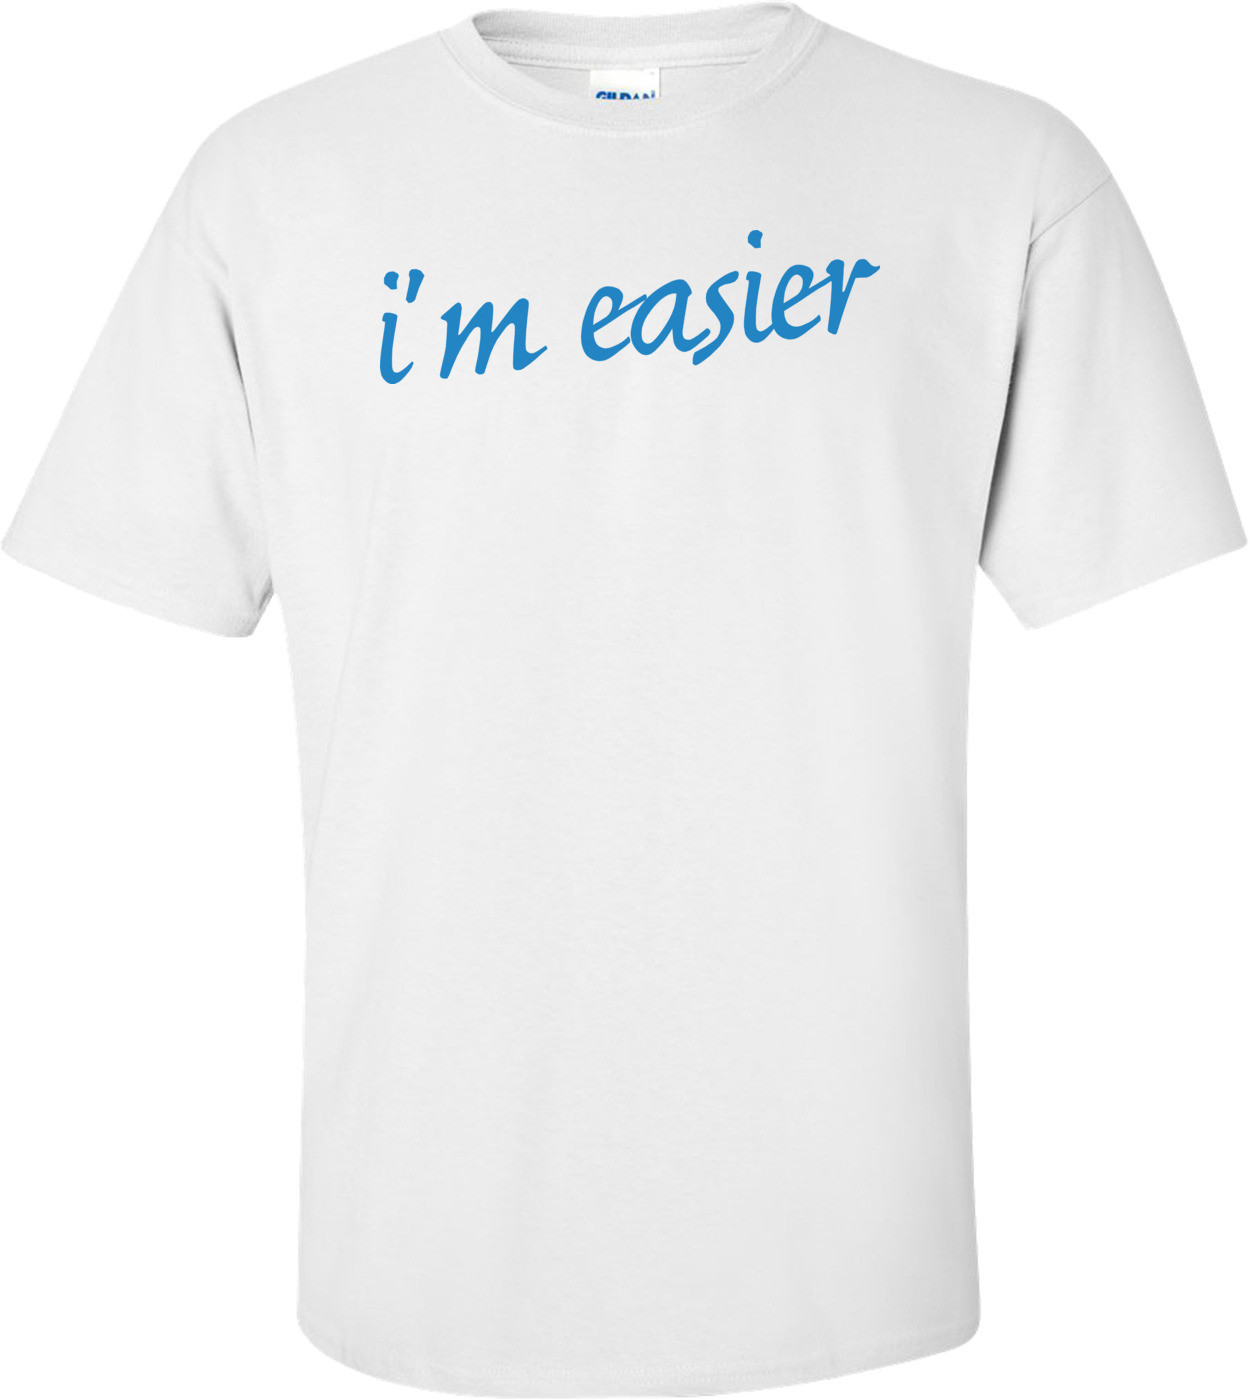 I'm Easier T-shirt